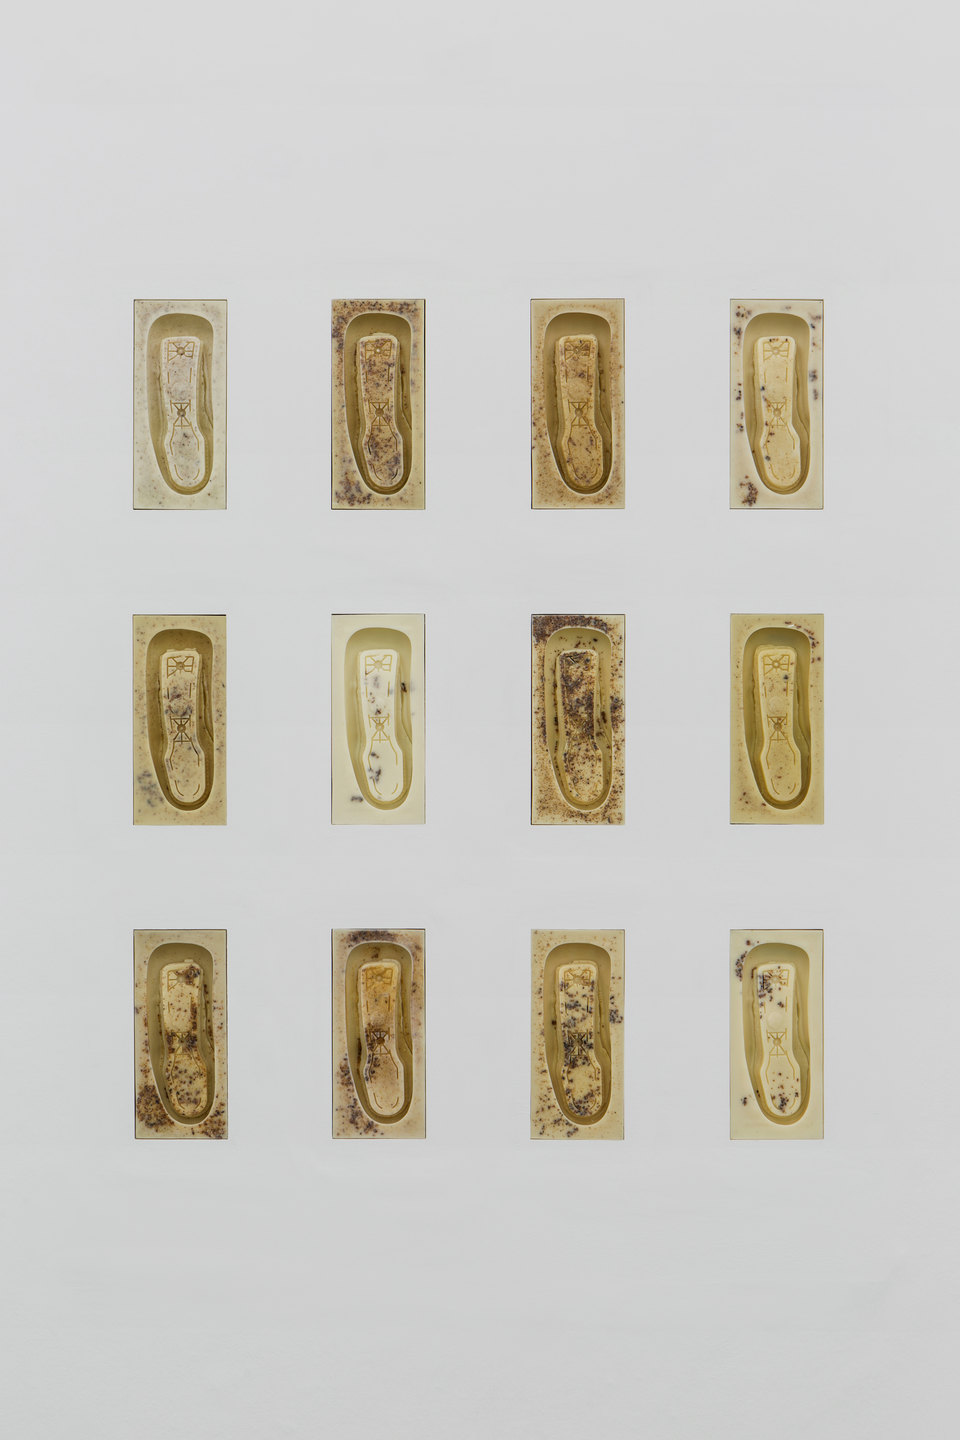 Patricia L. Boyd, 'Aeron Armrest I-XII', 2019, Used restaurant grease, wax, damar resin 31.1 x 13.7cm each, Cell Project Space